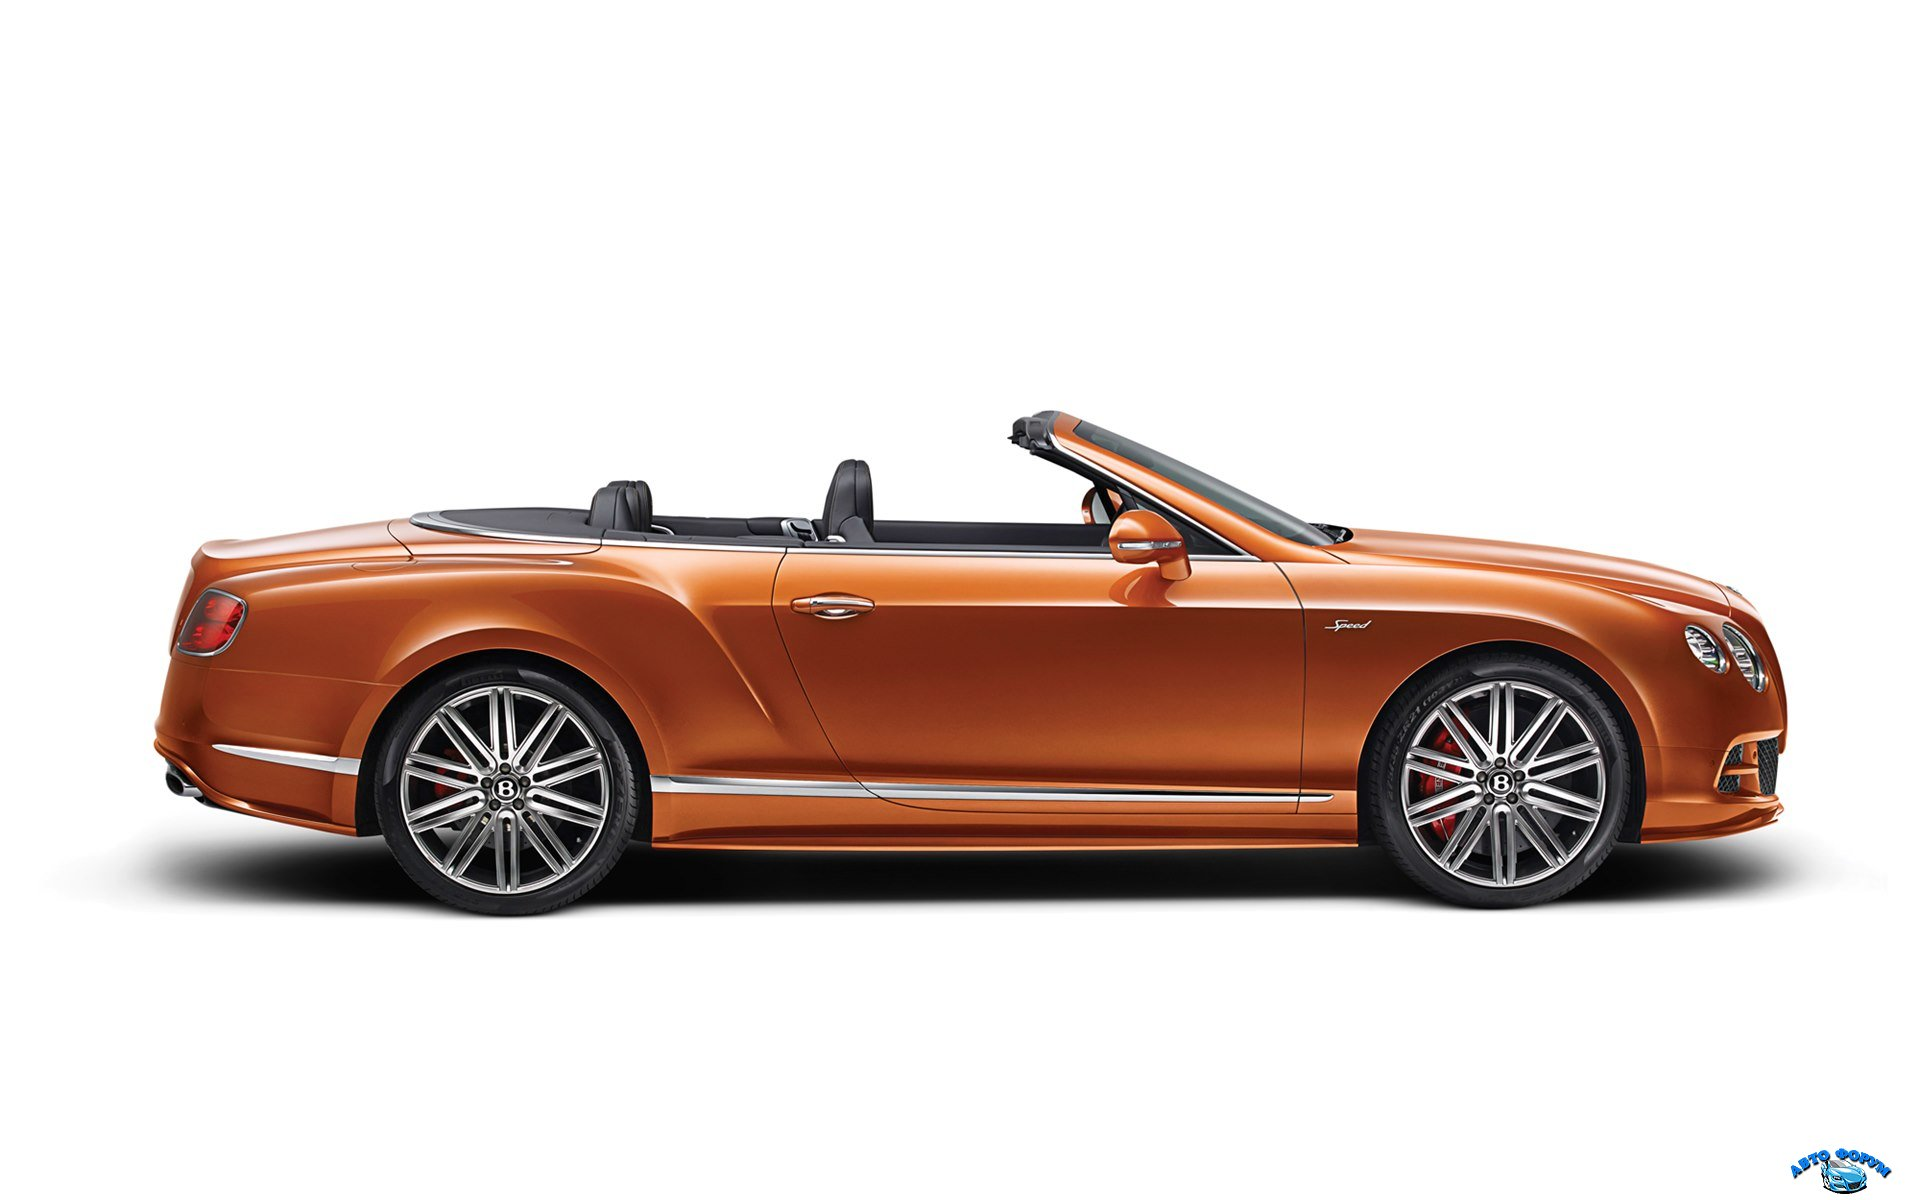 Bentley-Continental-GT-Speed-Convertible-2015-widescreen-04.jpg